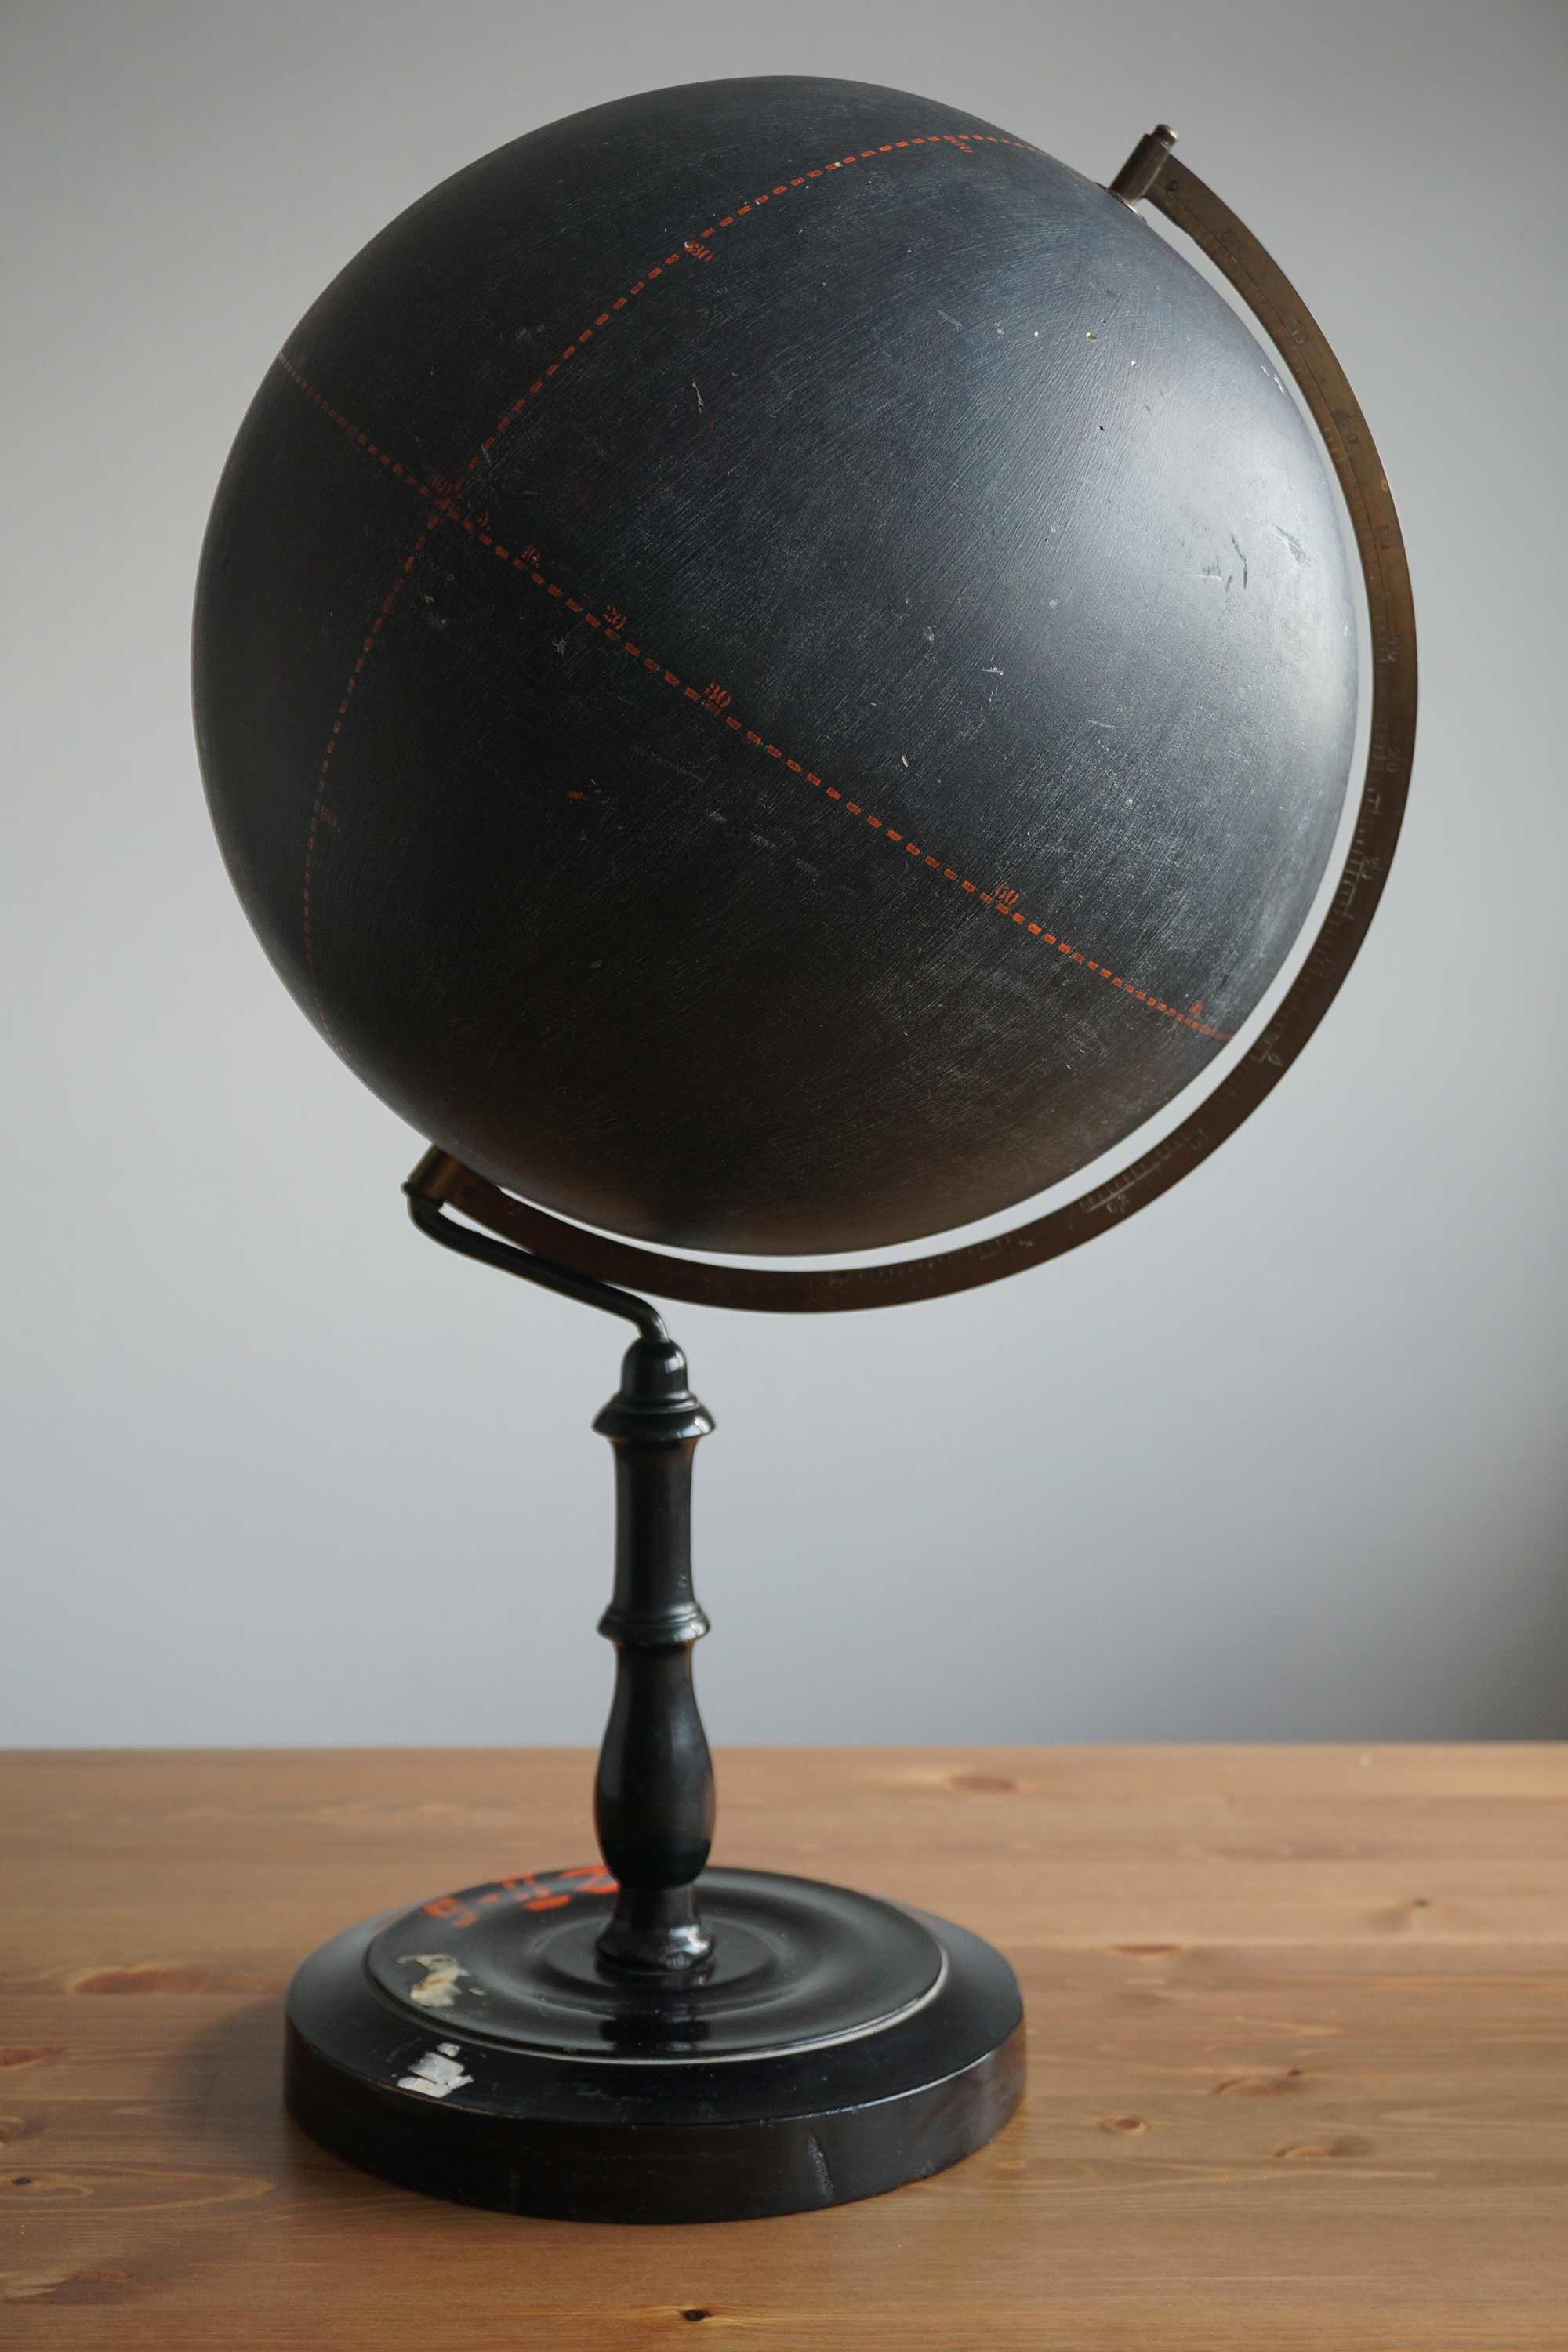 Interesting early 20th century slate surface teaching globe